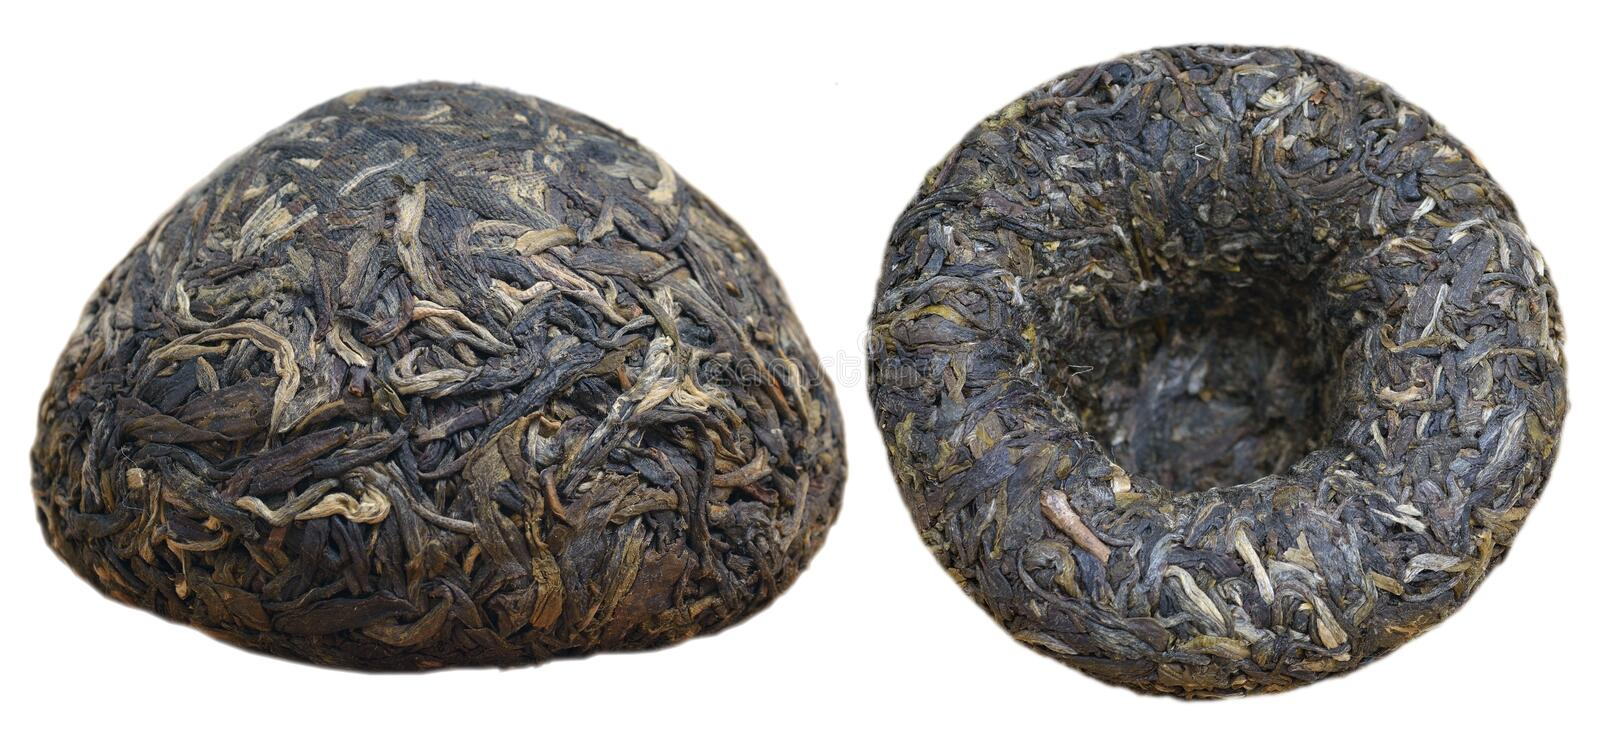 Tuocha tea. Two perspectives of Tuocha tea isolated on white. It is a form of production of Puer in Yunnan province of China stock photography